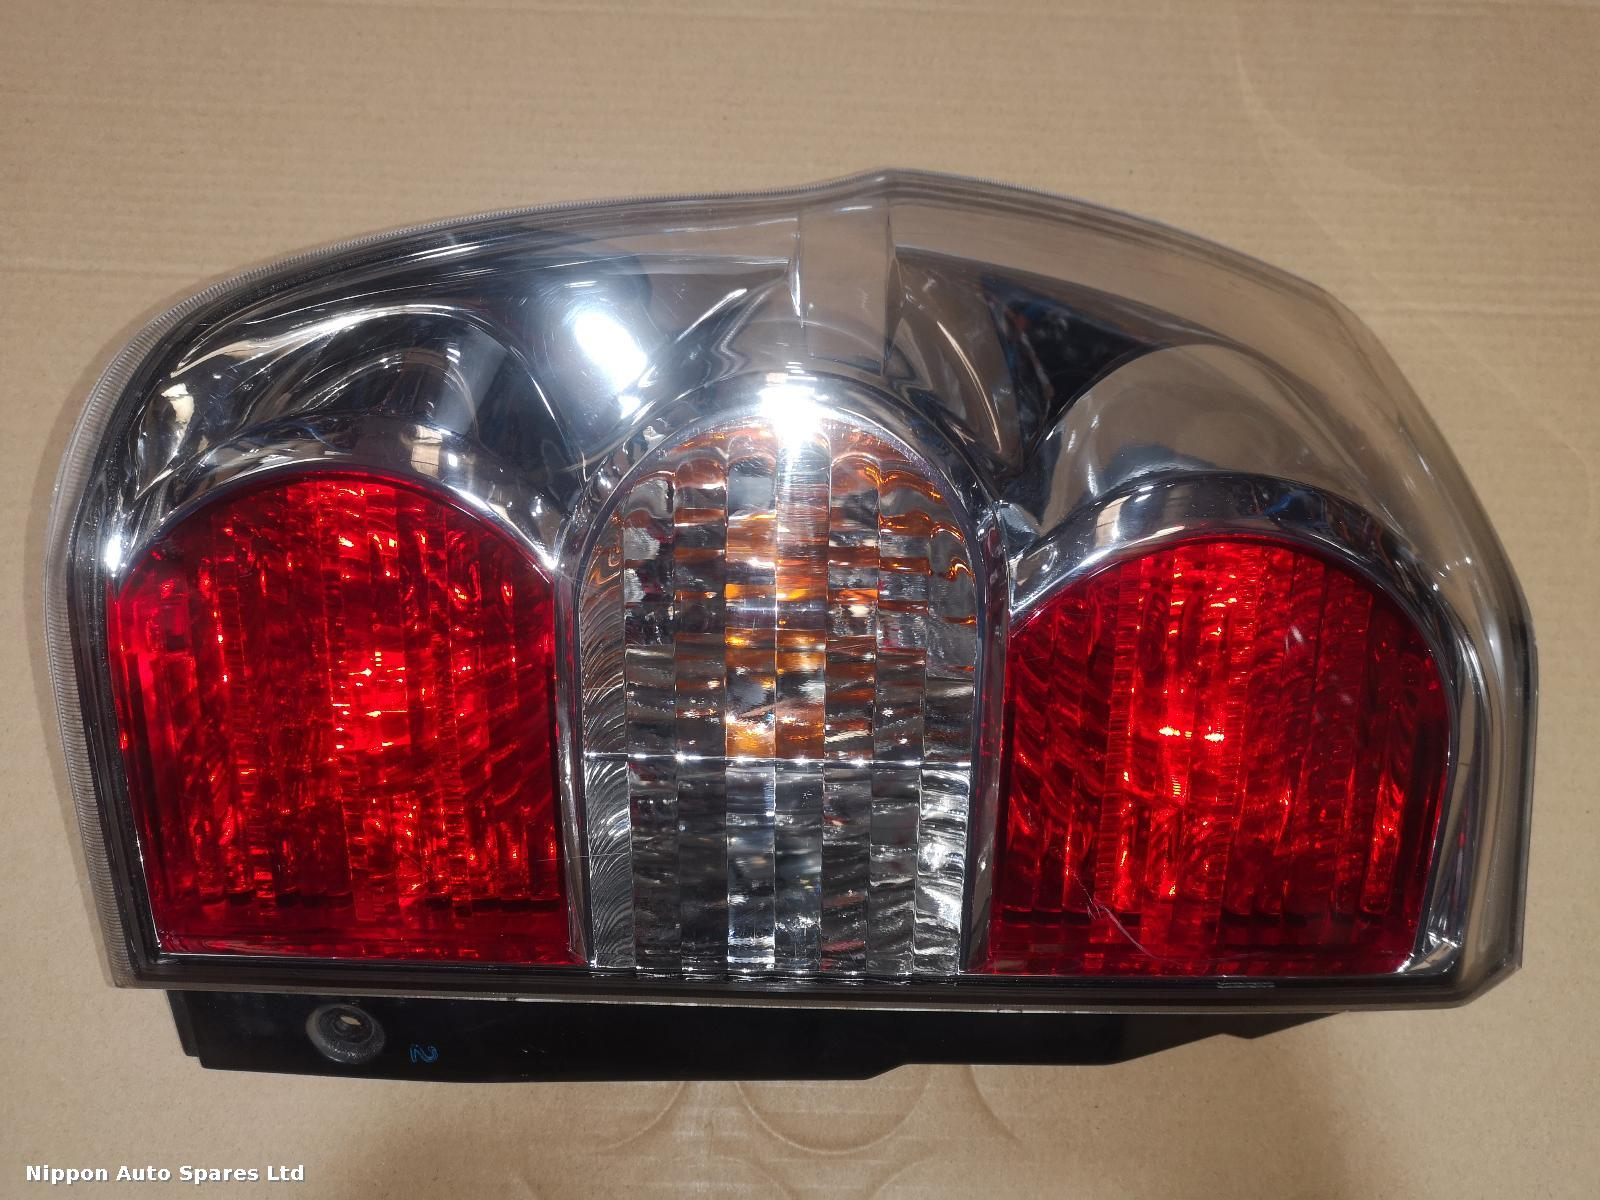 Suzuki GRAND VITARA L Taillight 3 DOOR: 54675